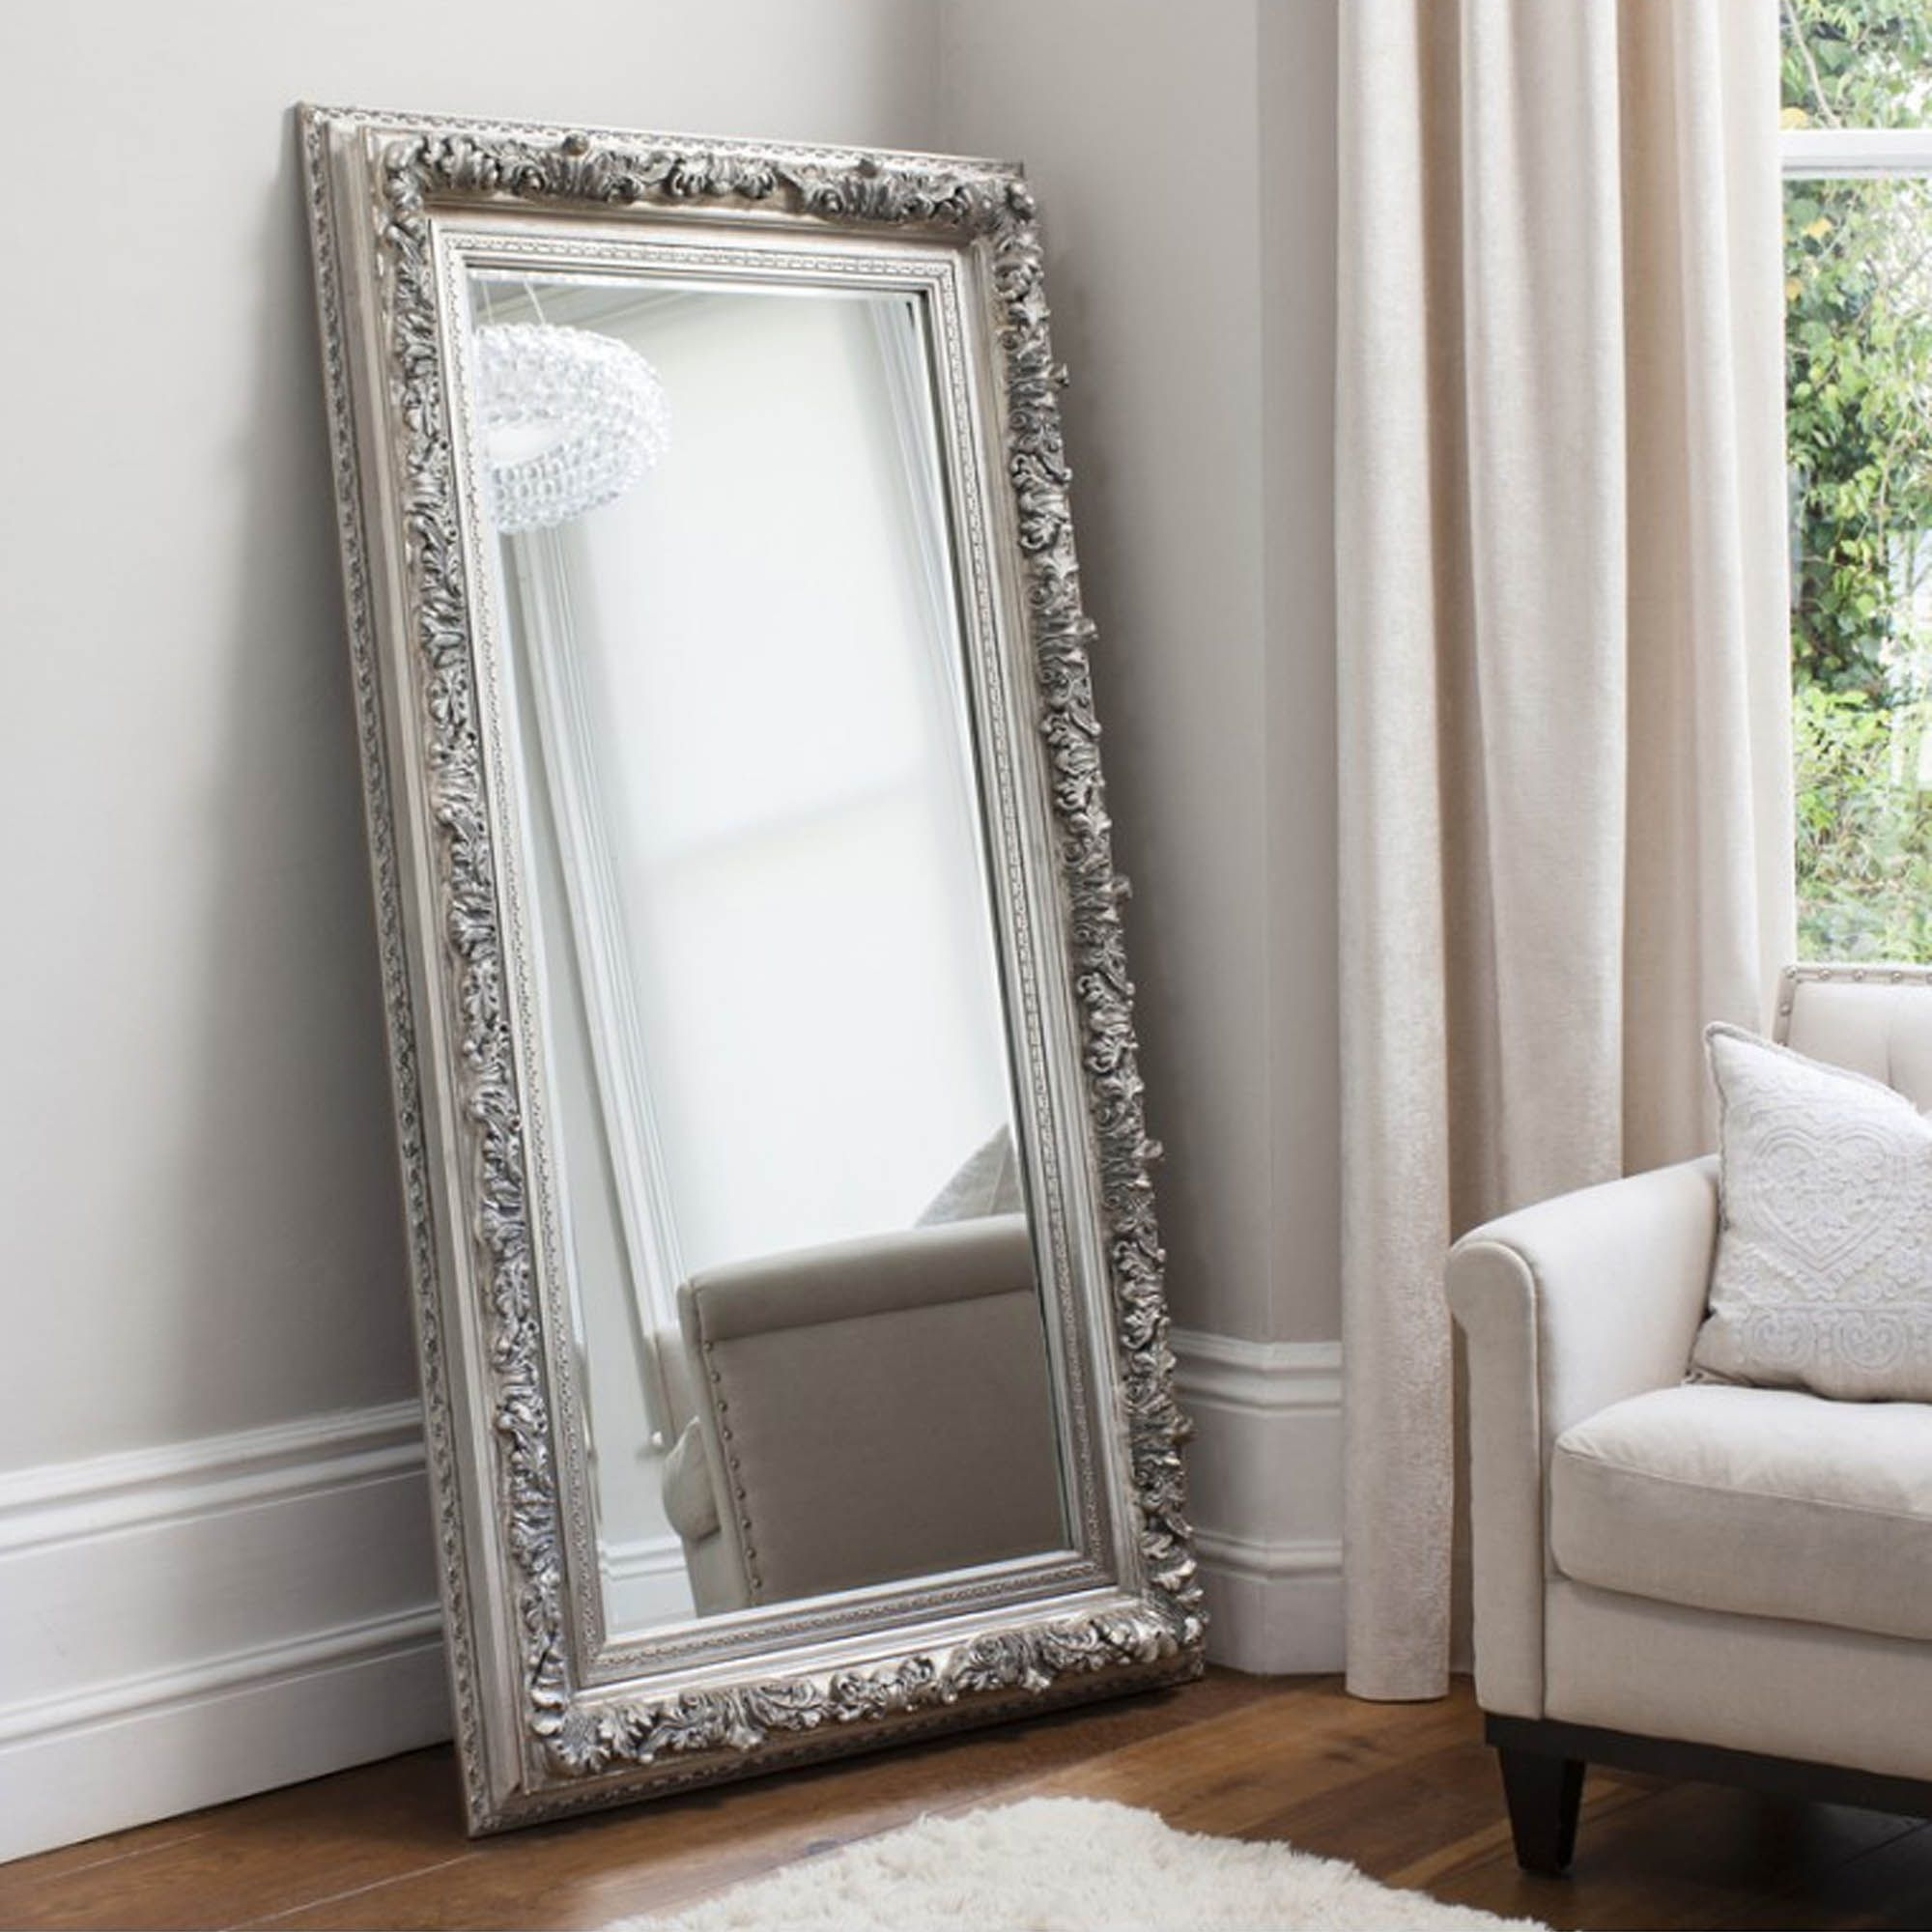 Floor Mirror | Silver gilded mirror | Pinterest | Floor mirror ...